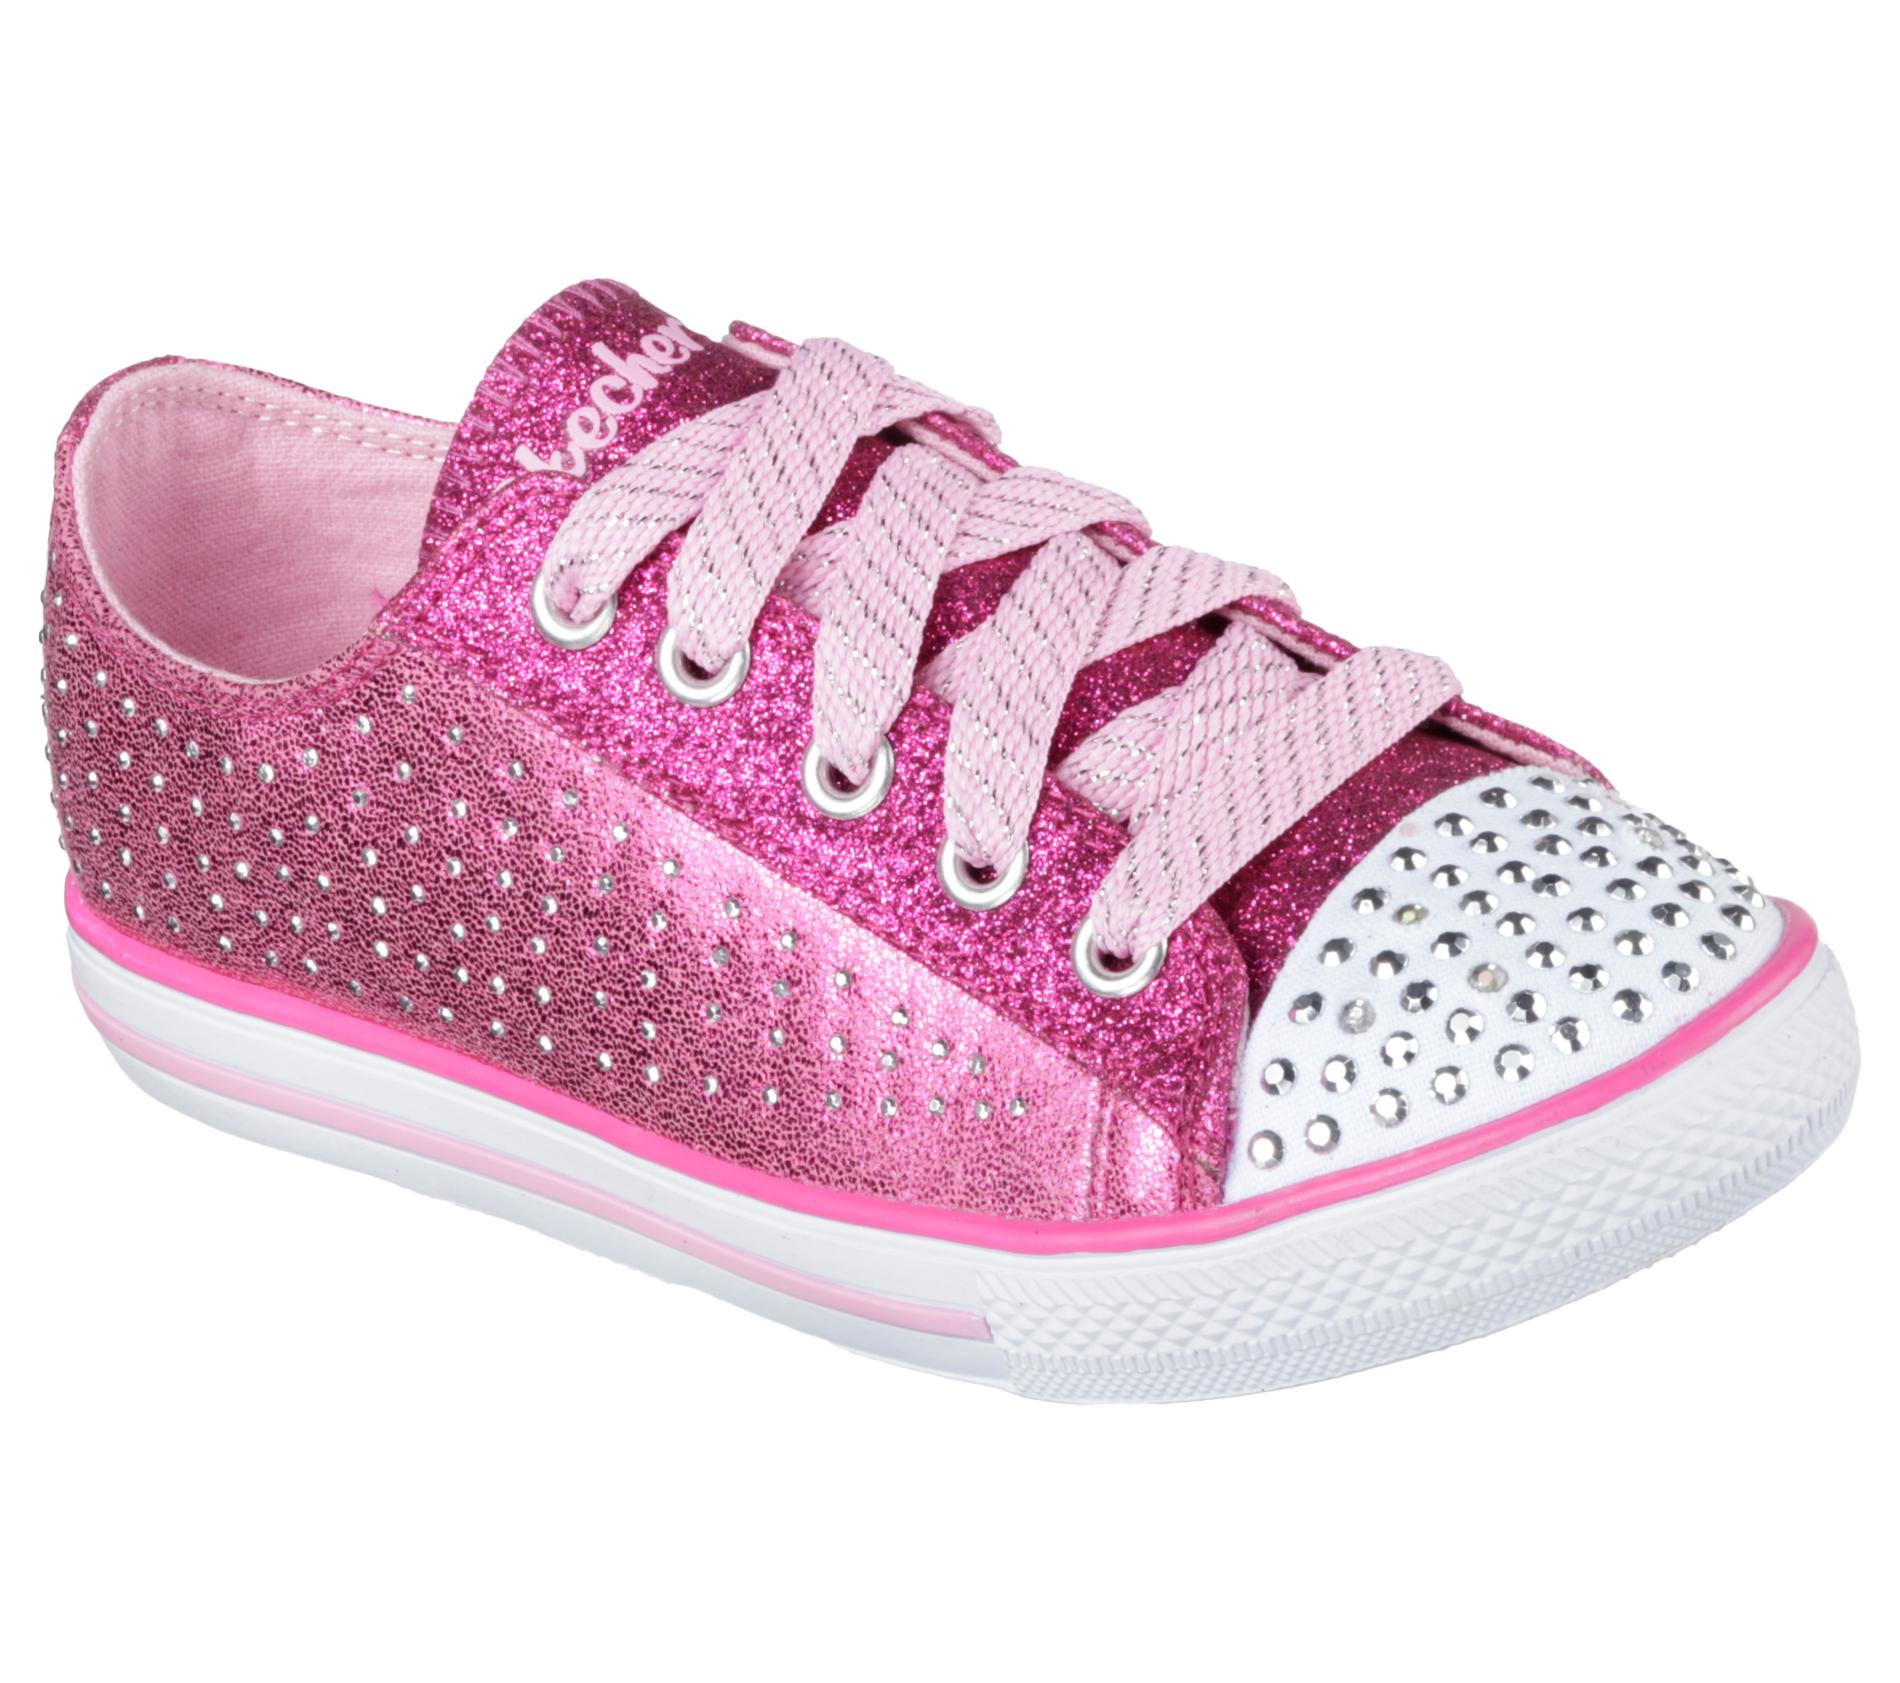 skechers s twinkle toes chit chats pink light up sneaker